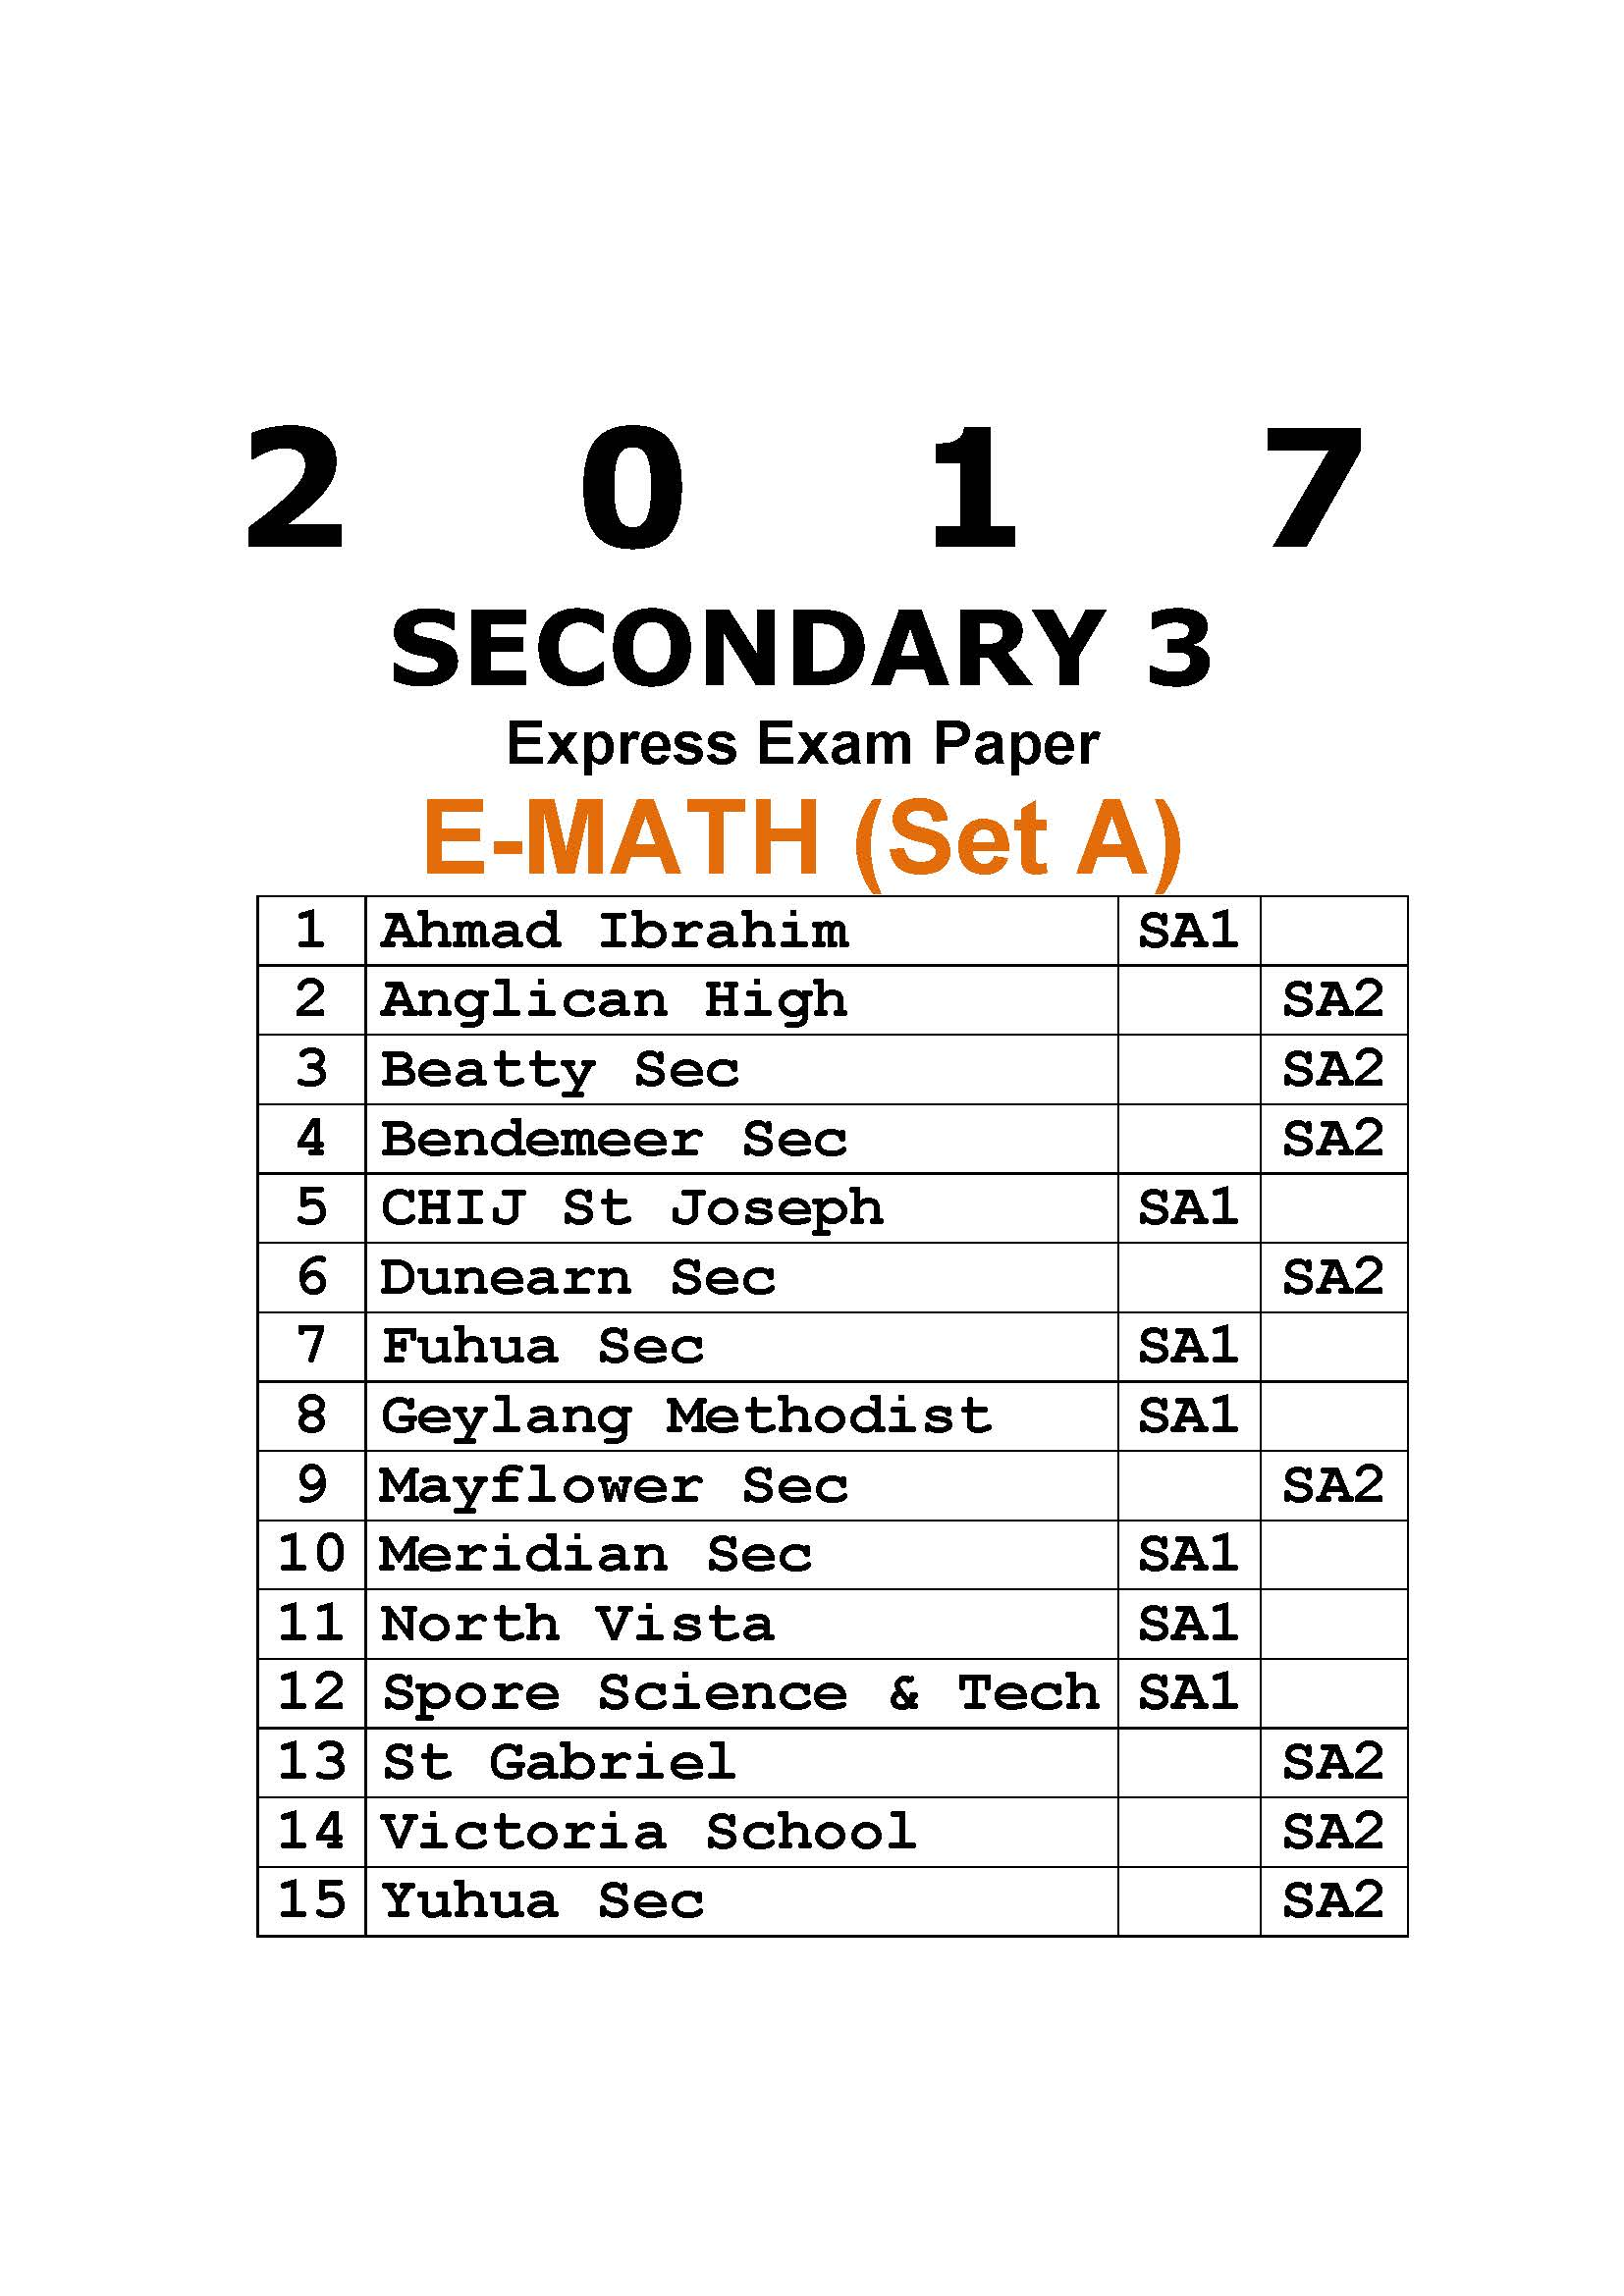 2017 Secondary 3 Express Maths Exam Paper (Set A